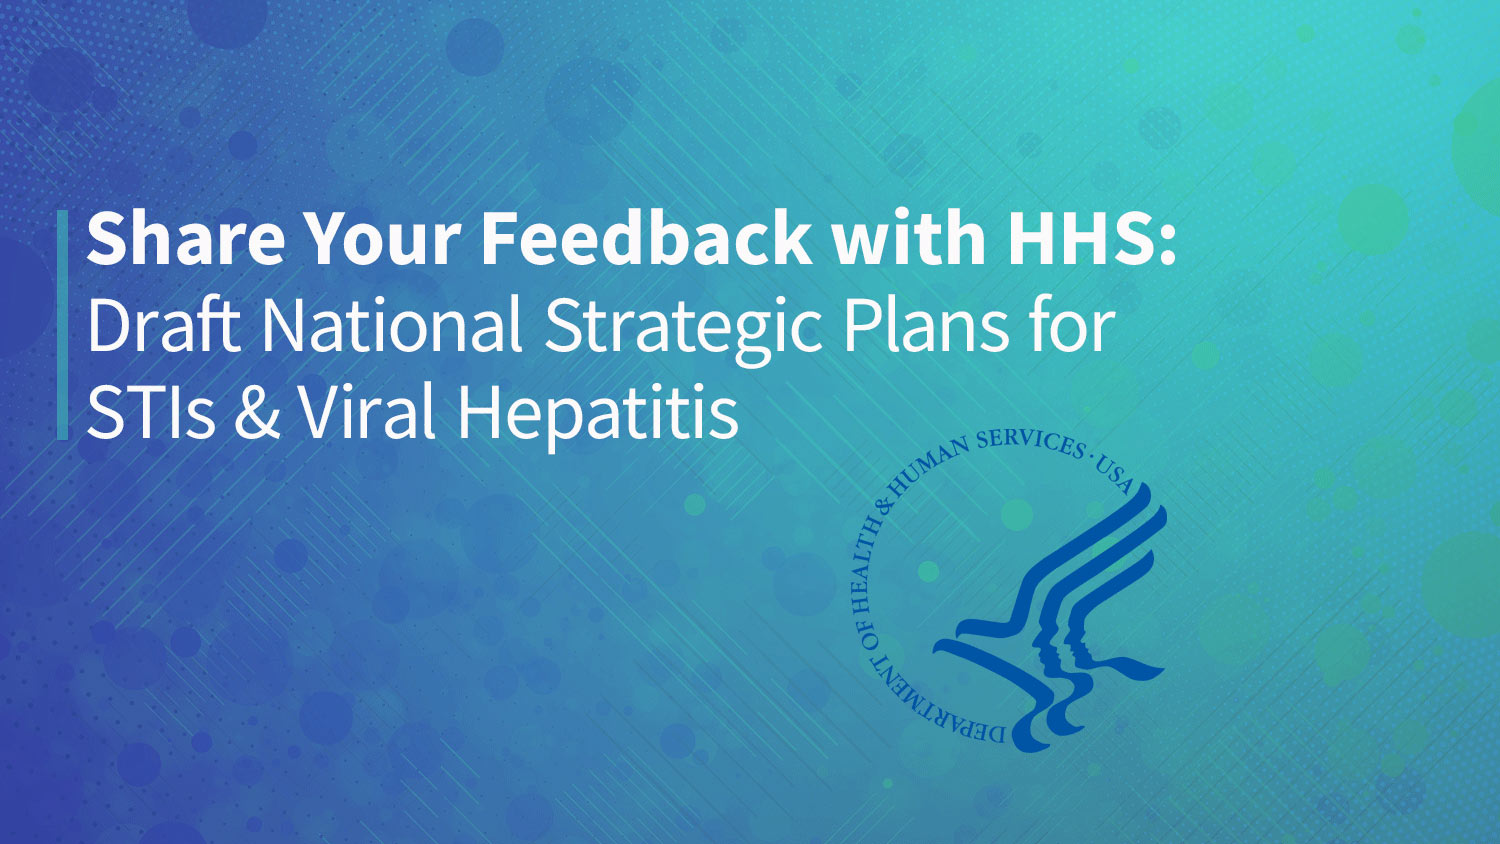 Share Your Feedback with HHS: Draft National Strategic Plans for STIs & Viral Hepatitis